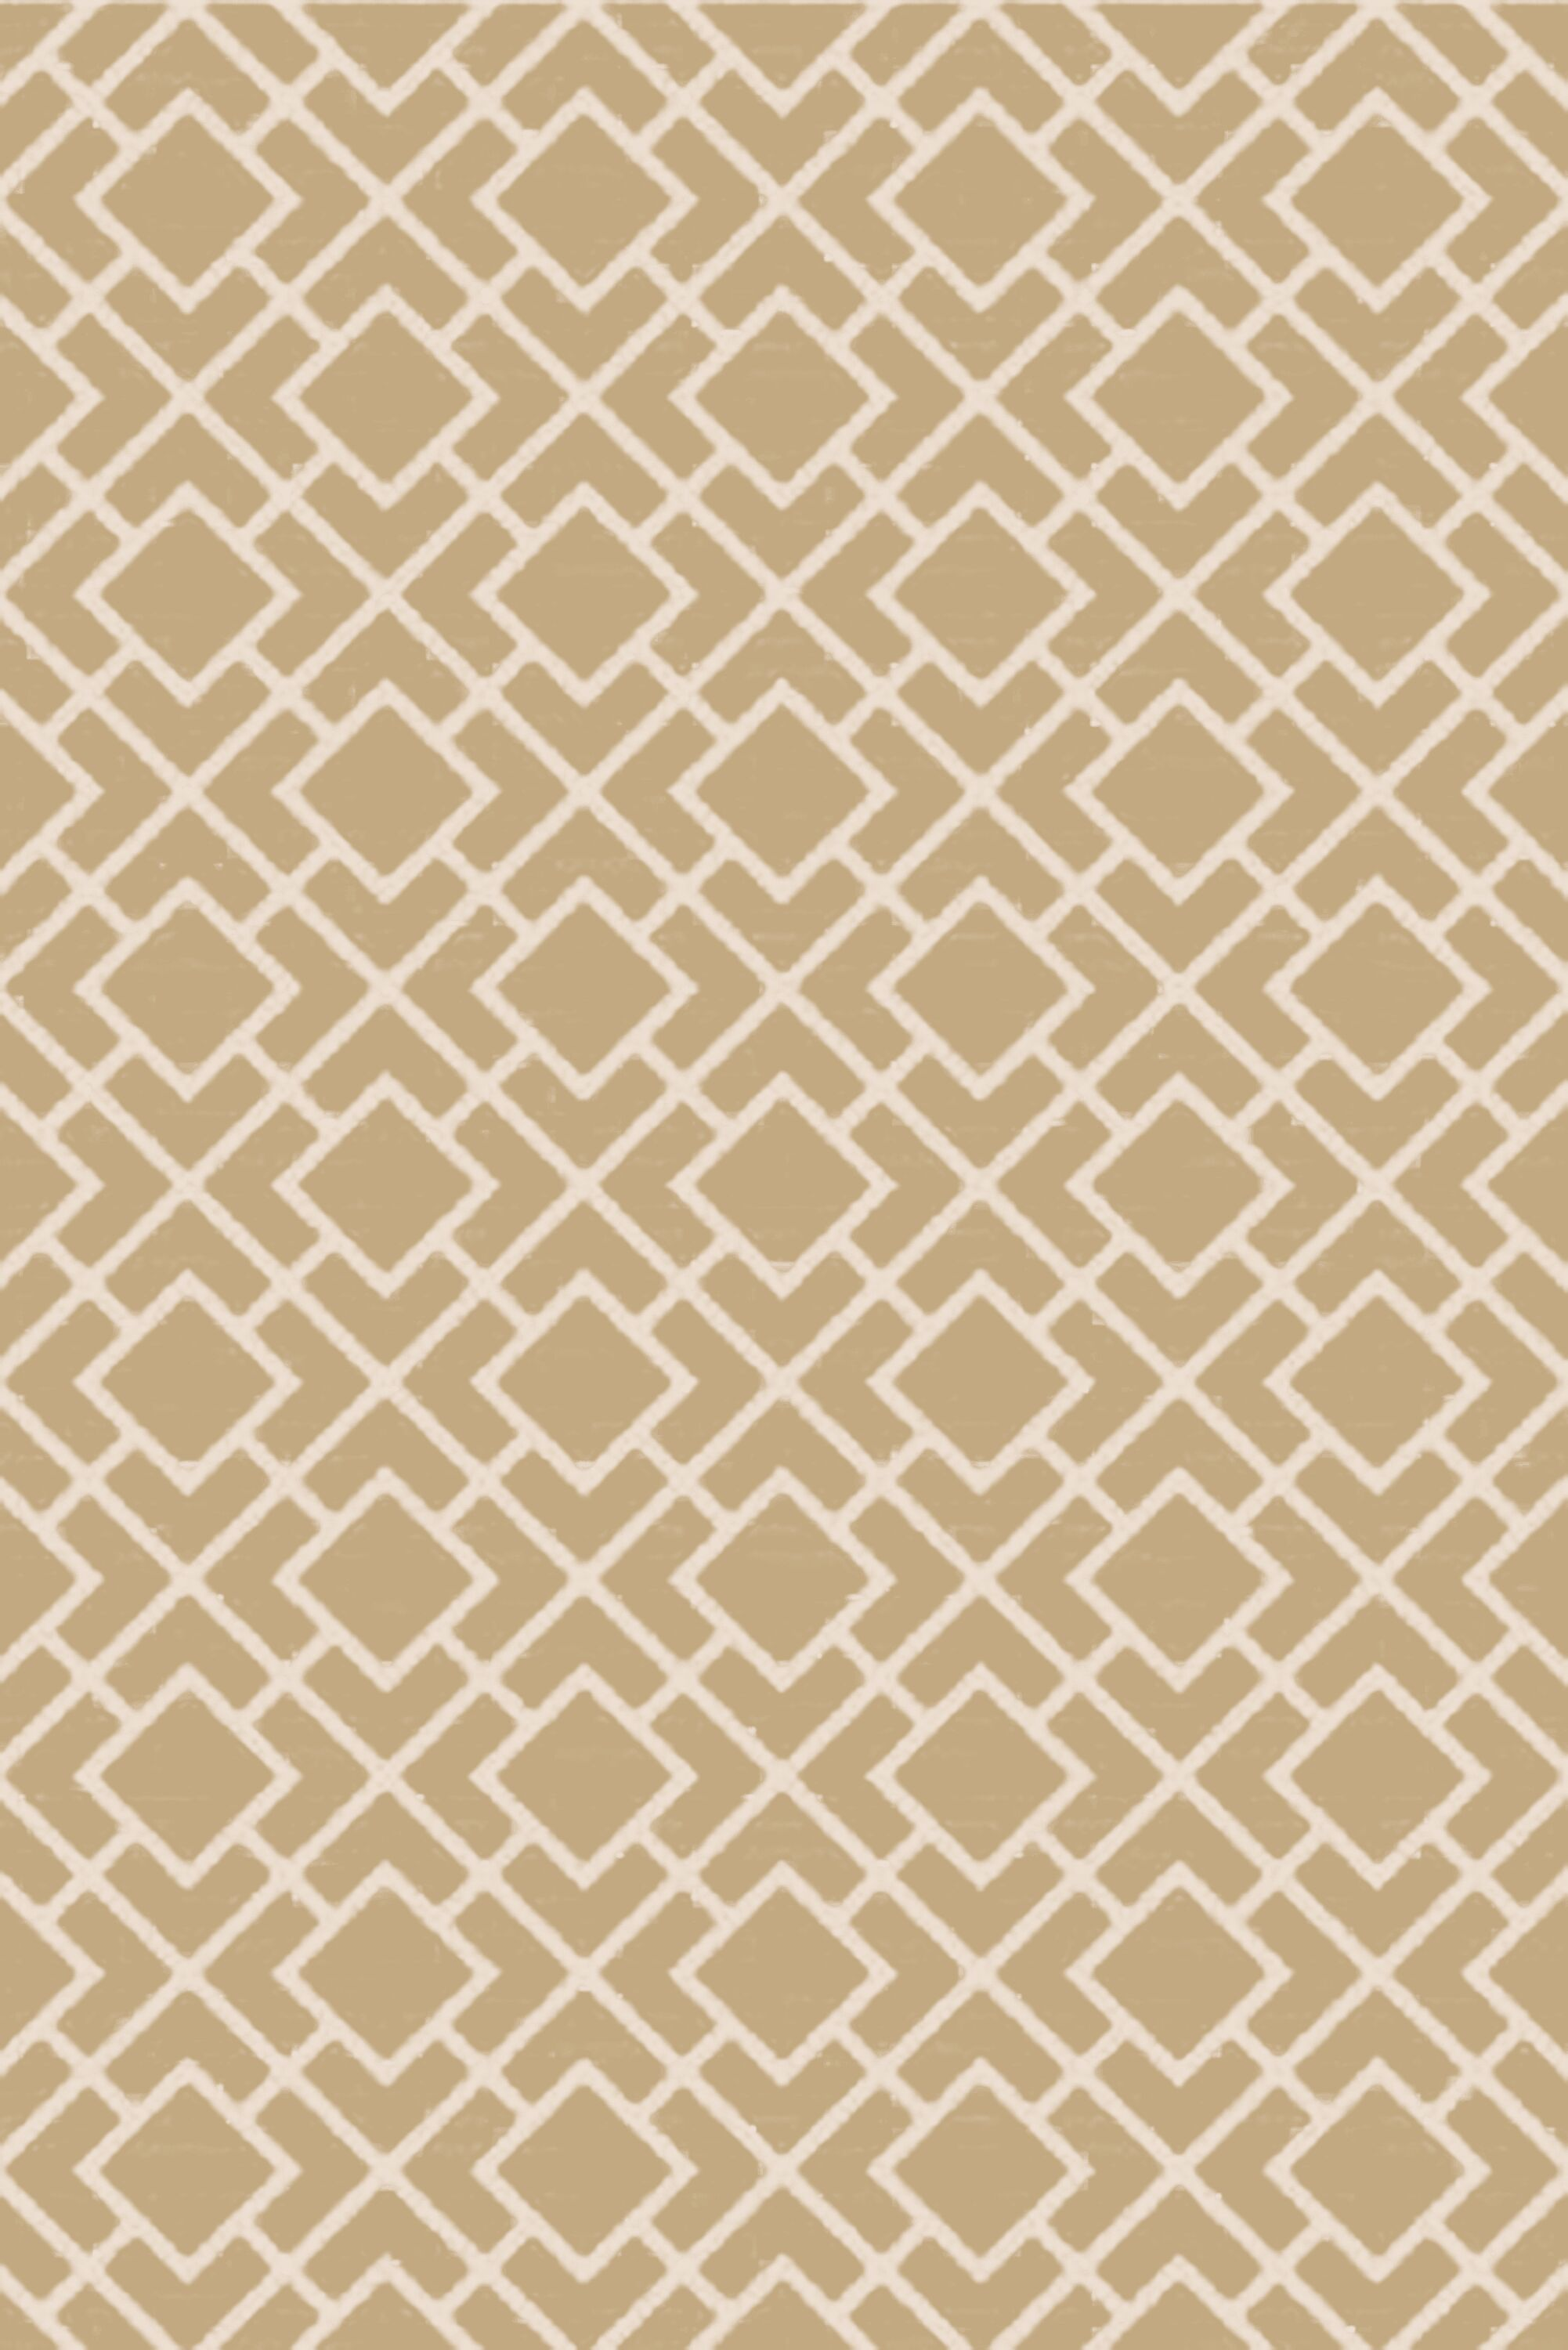 Berkeley Ivory/Beige Area Rug Rug Size: Rectangle 8' x 10'